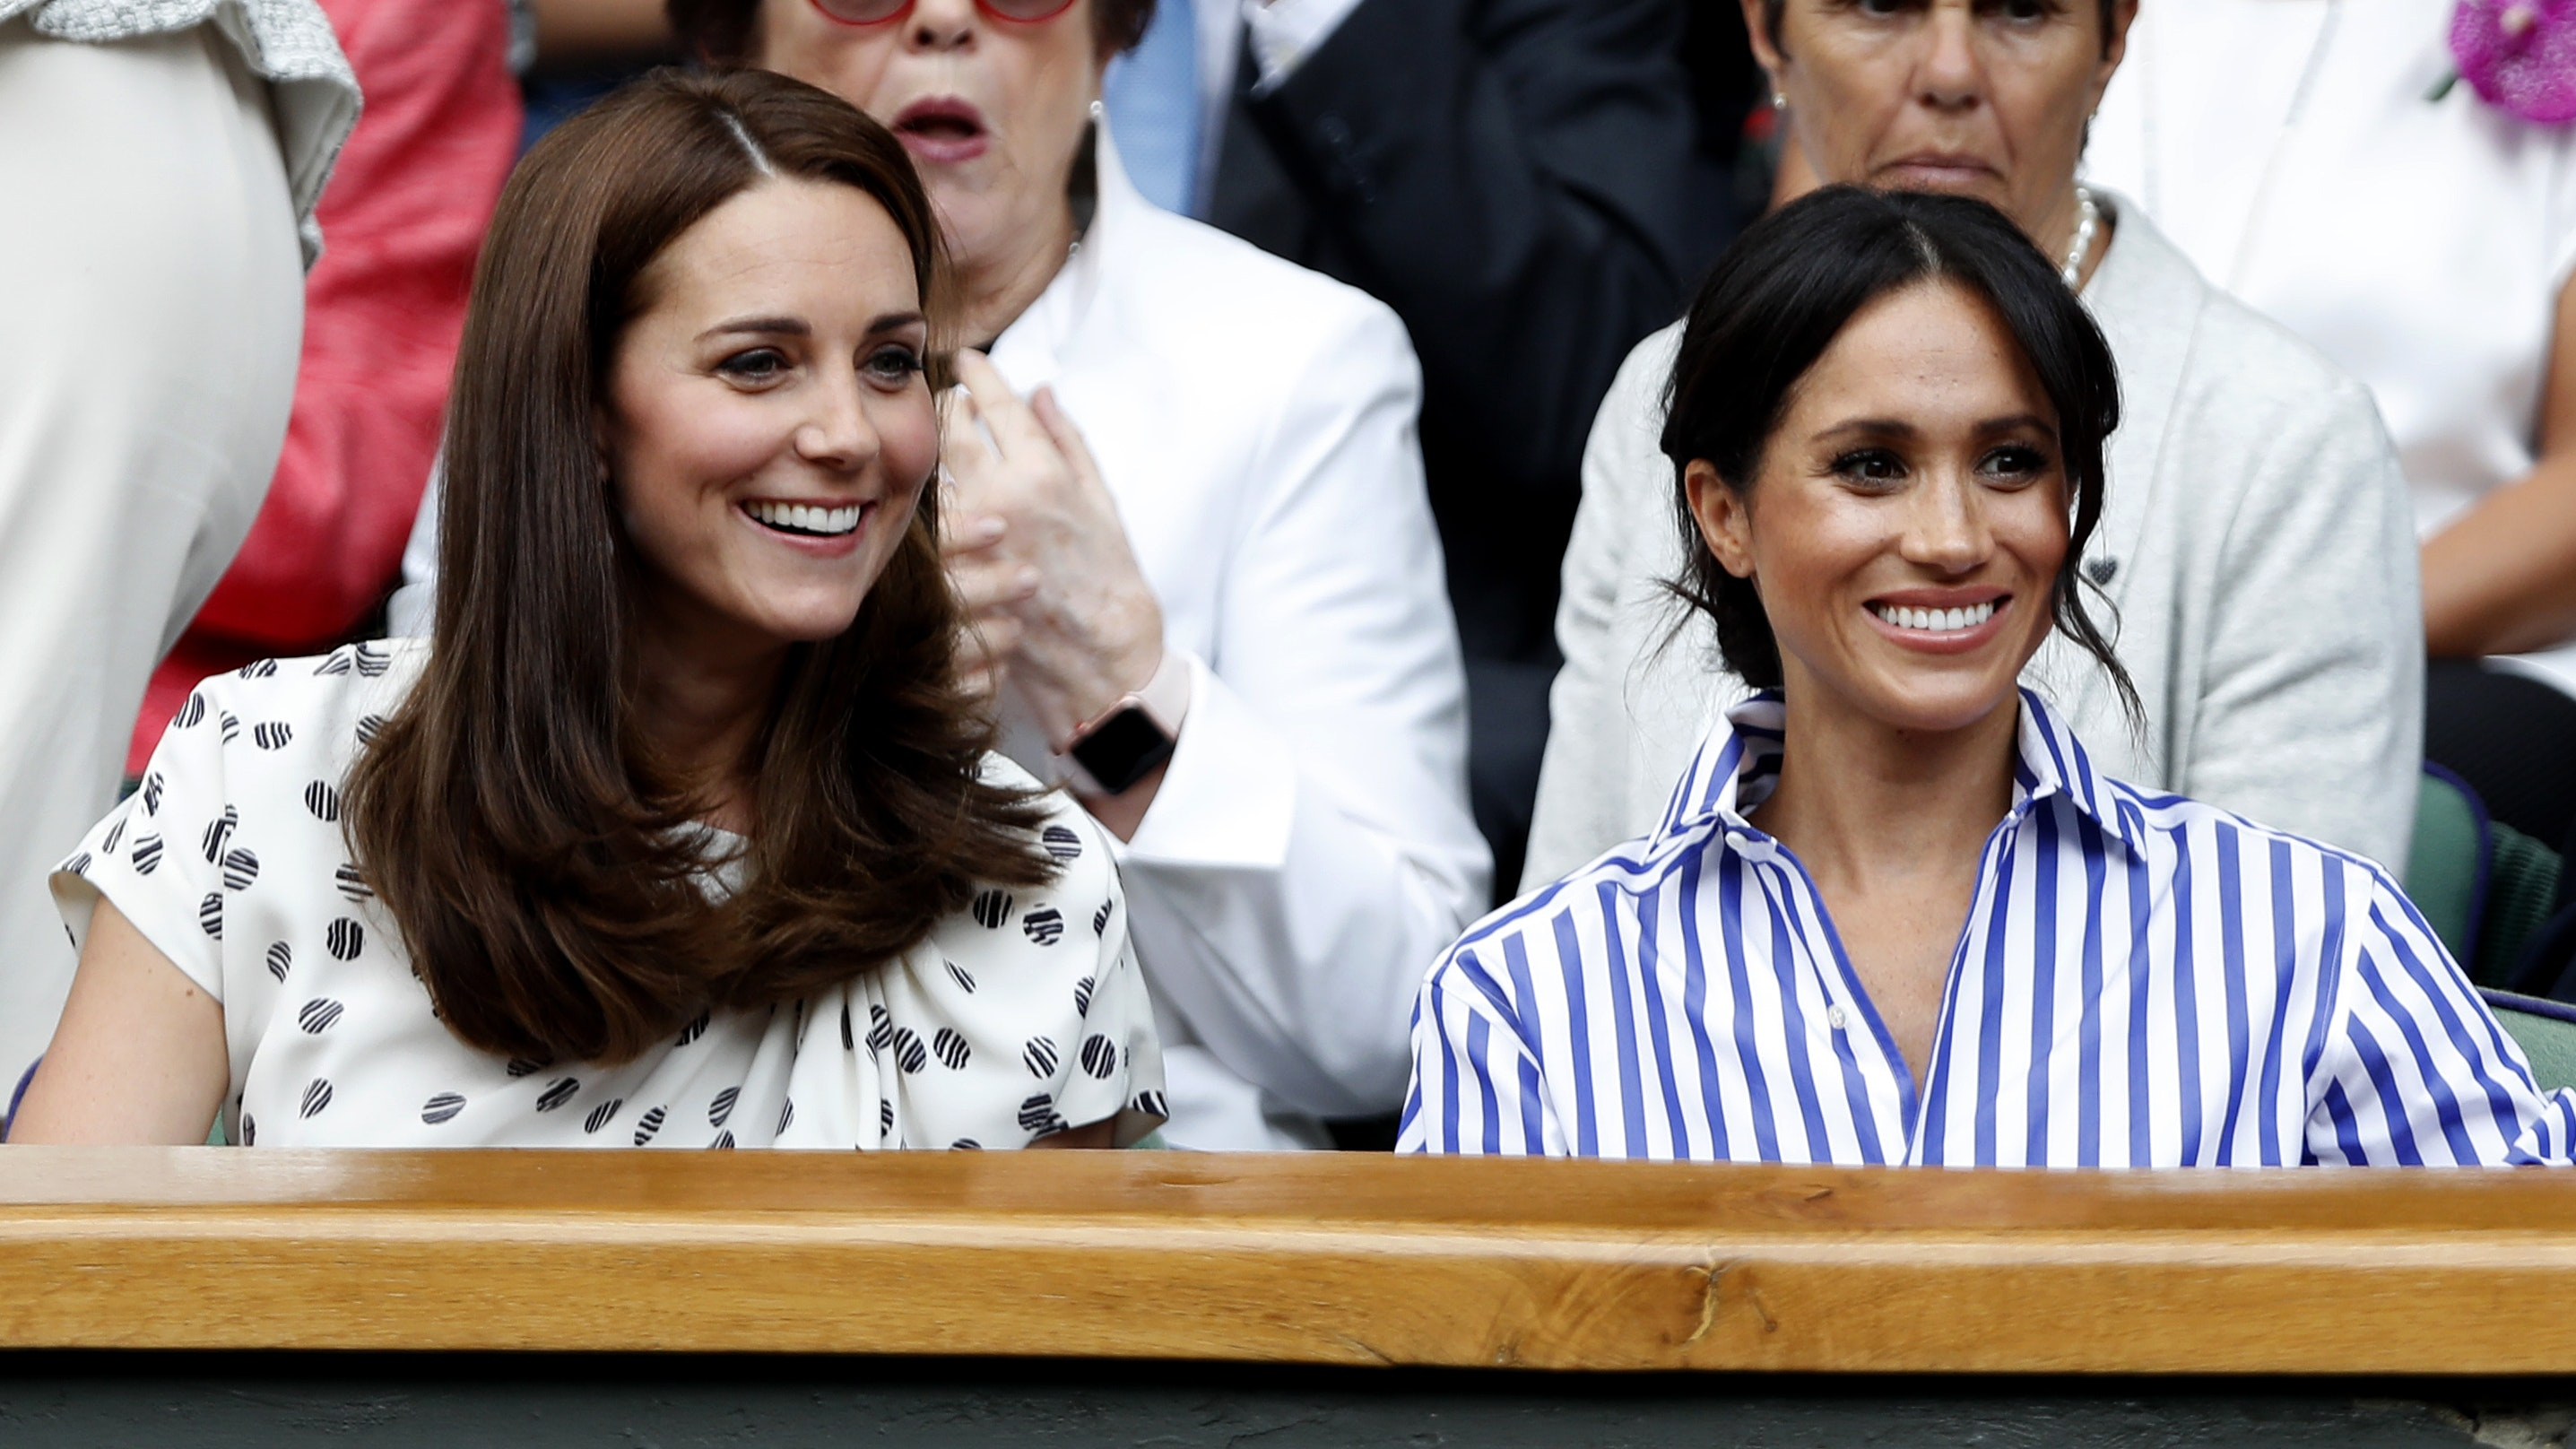 Kate Middleton and Meghan Markle share sweetest moment together at Wimbledon